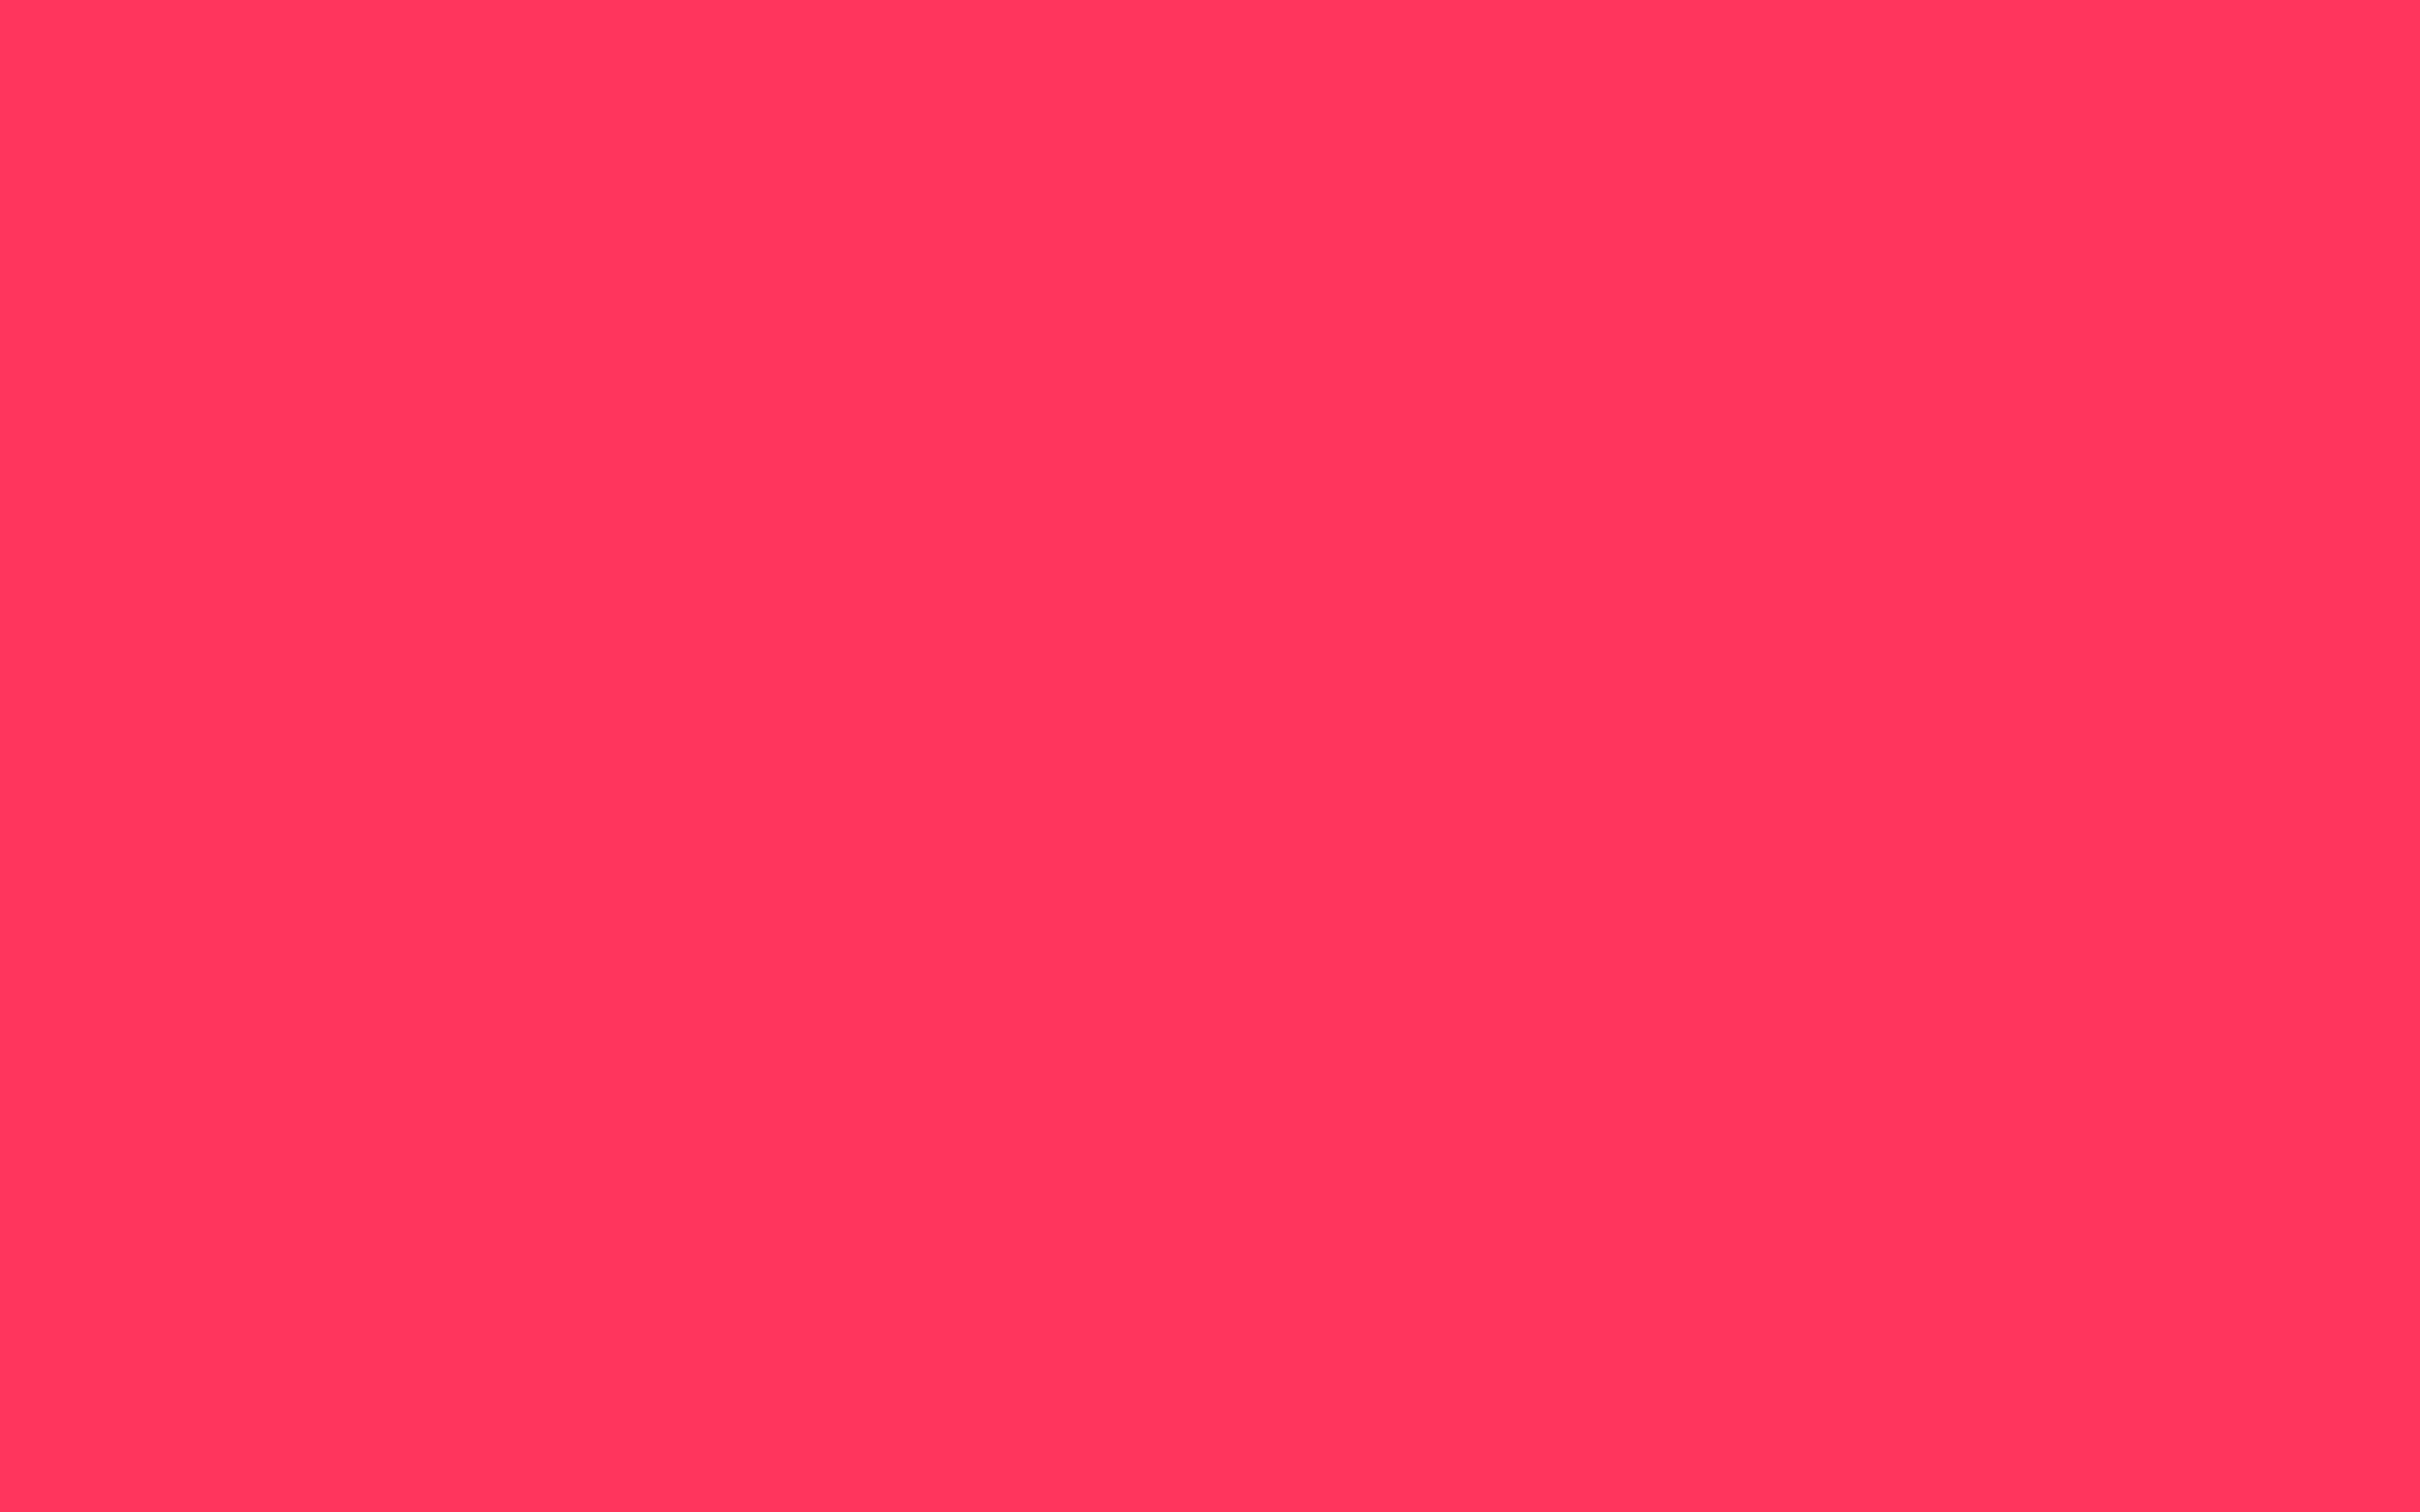 2880x1800 Radical Red Solid Color Background